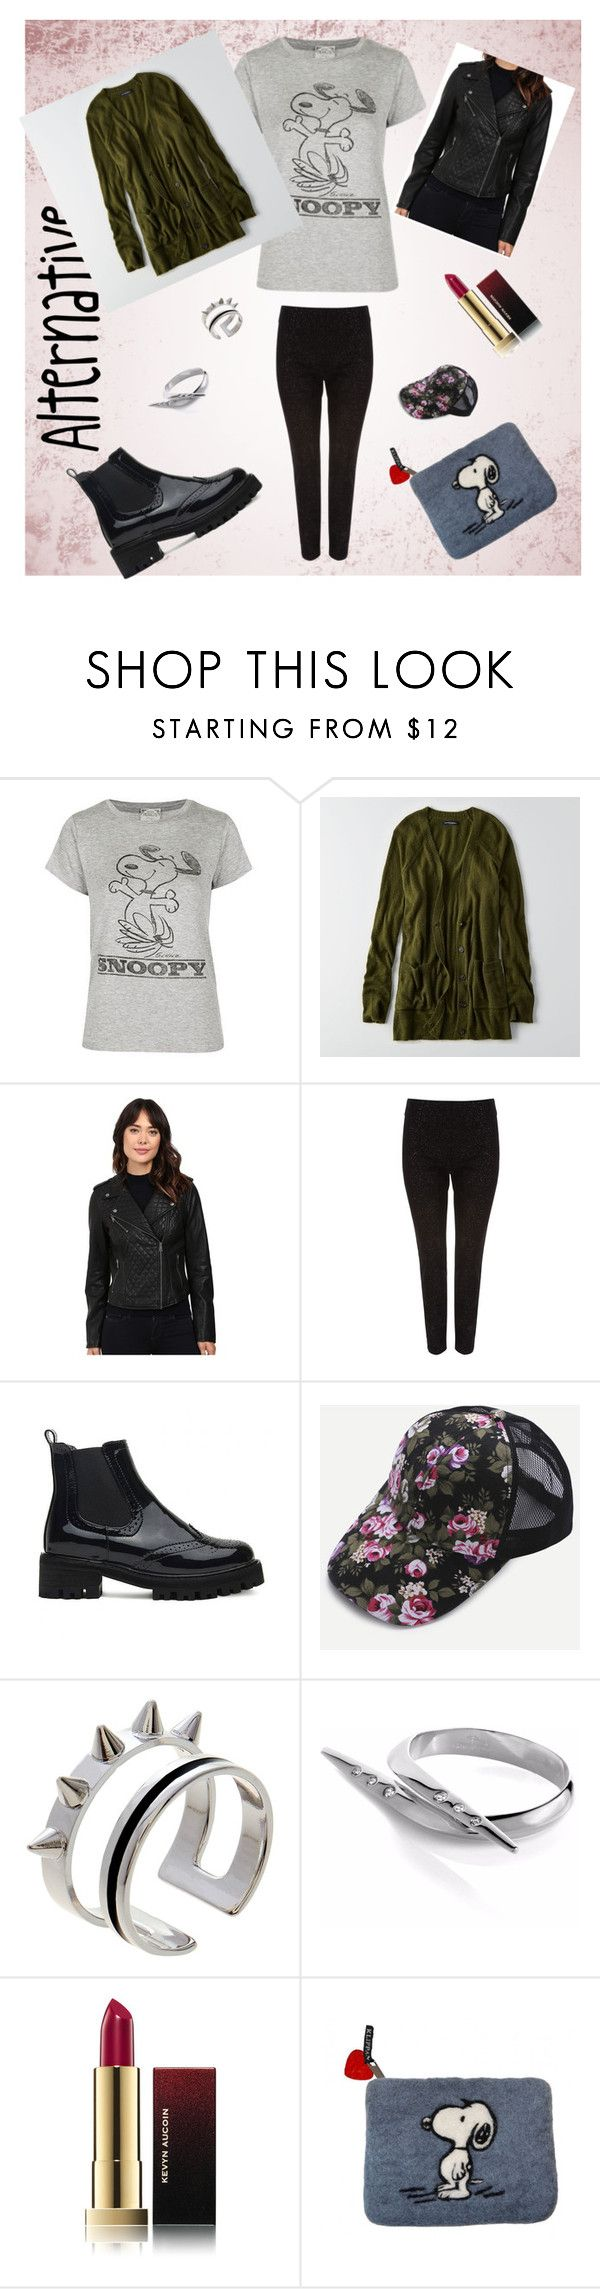 """Alternative"" by beatefeick ❤ liked on Polyvore featuring Topshop, American Eagle Outfitters, Levi's, Phase Eight, Maria Francesca Pepe, Sonal Bhaskaran, Kevyn Aucoin, Klippan, Leather and floralprint"